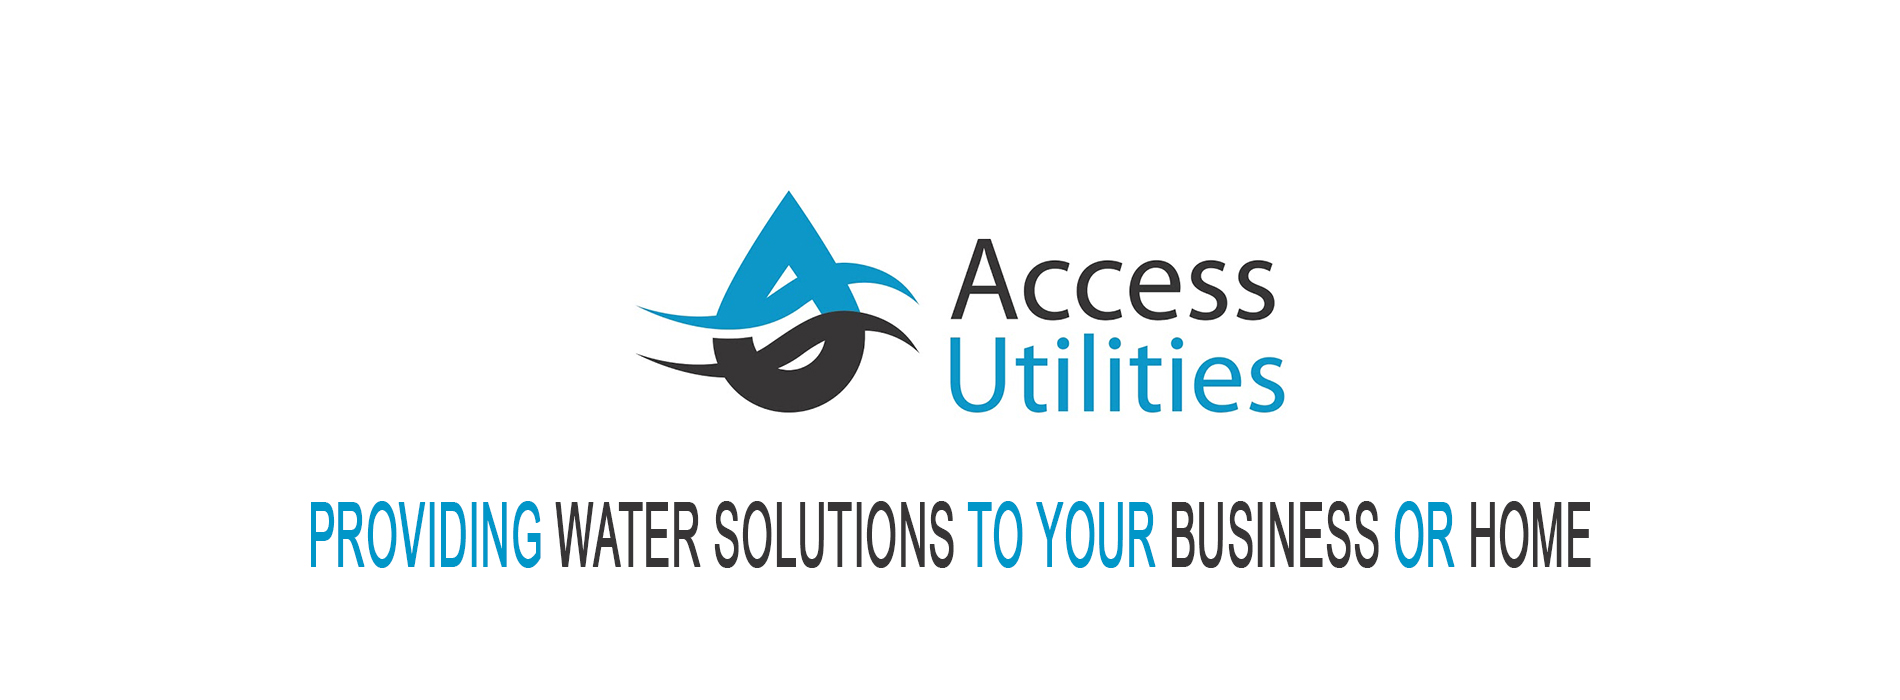 Access Utilities Header